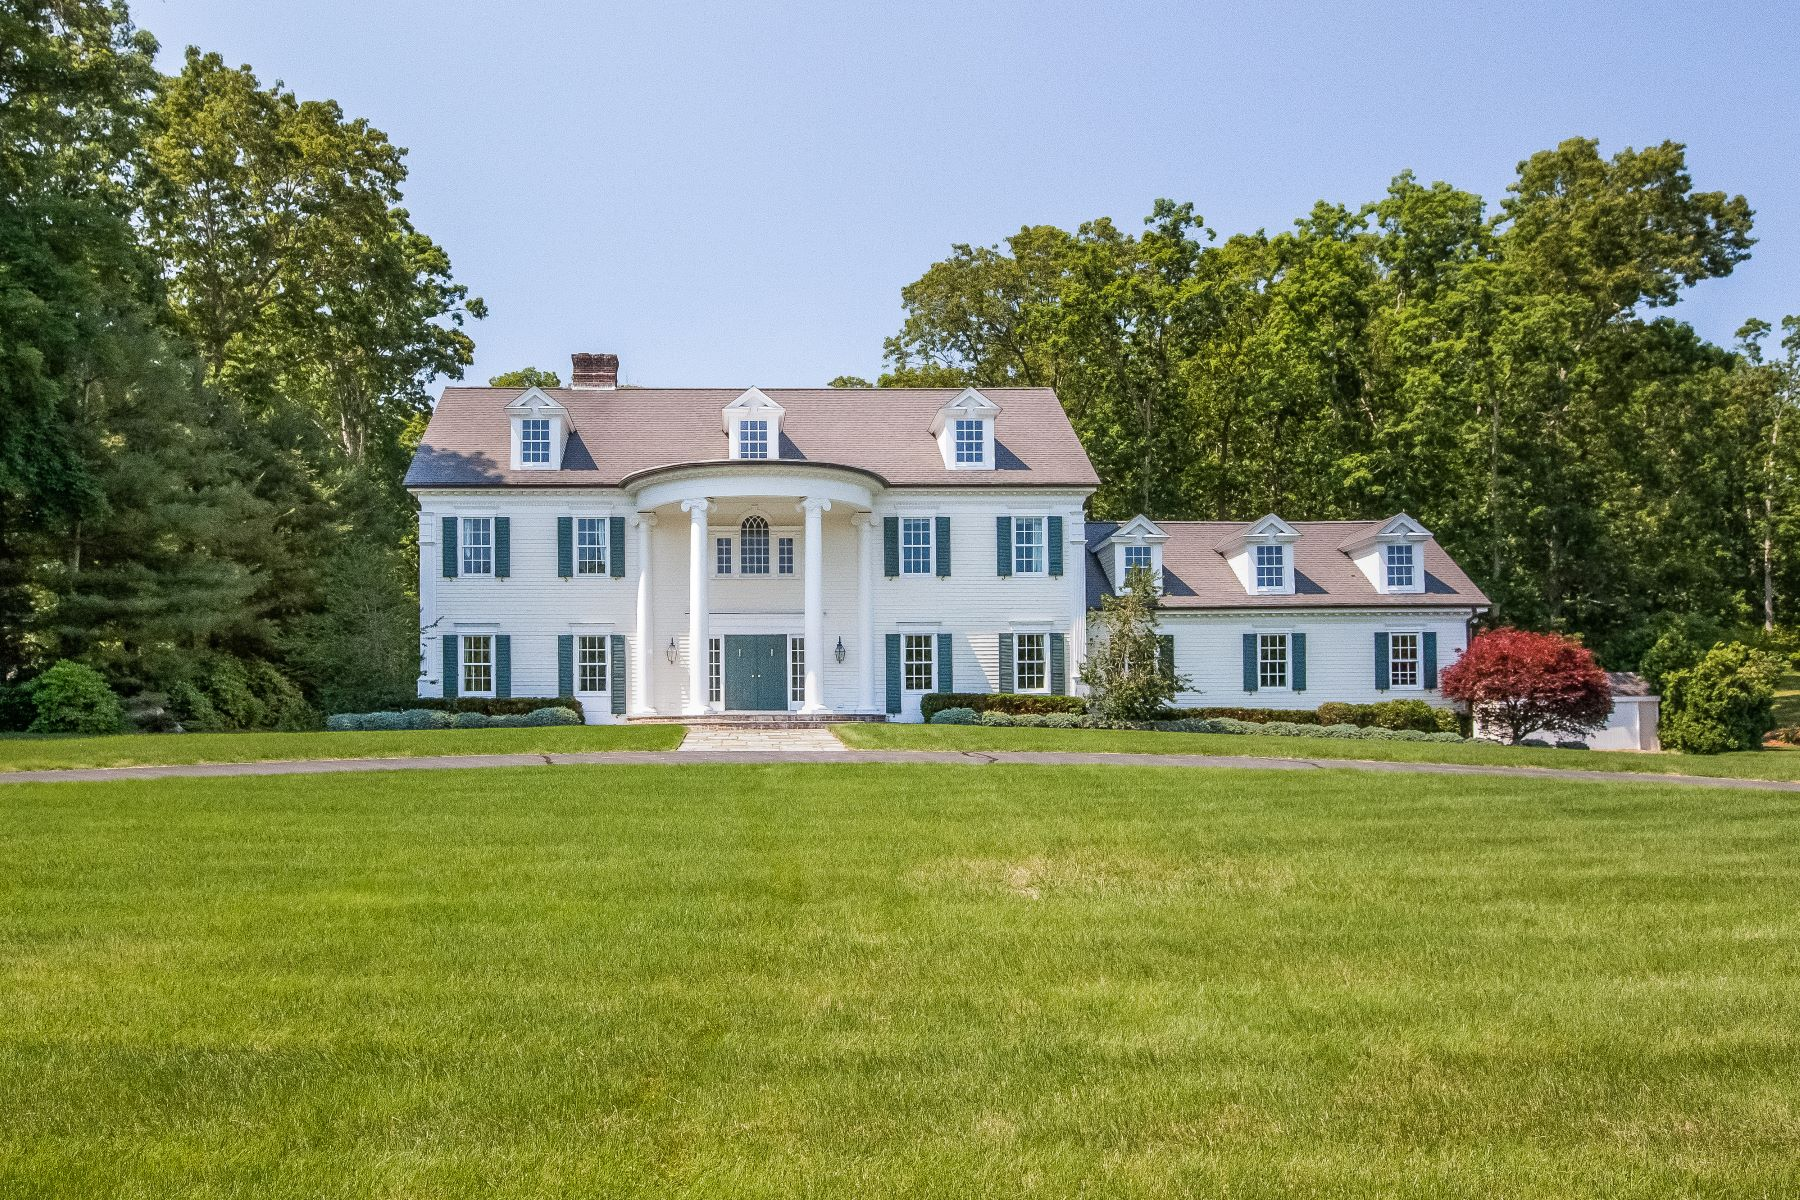 Casa Unifamiliar por un Venta en 381 Boston Post Rd Madison, Connecticut, 06443 Estados Unidos